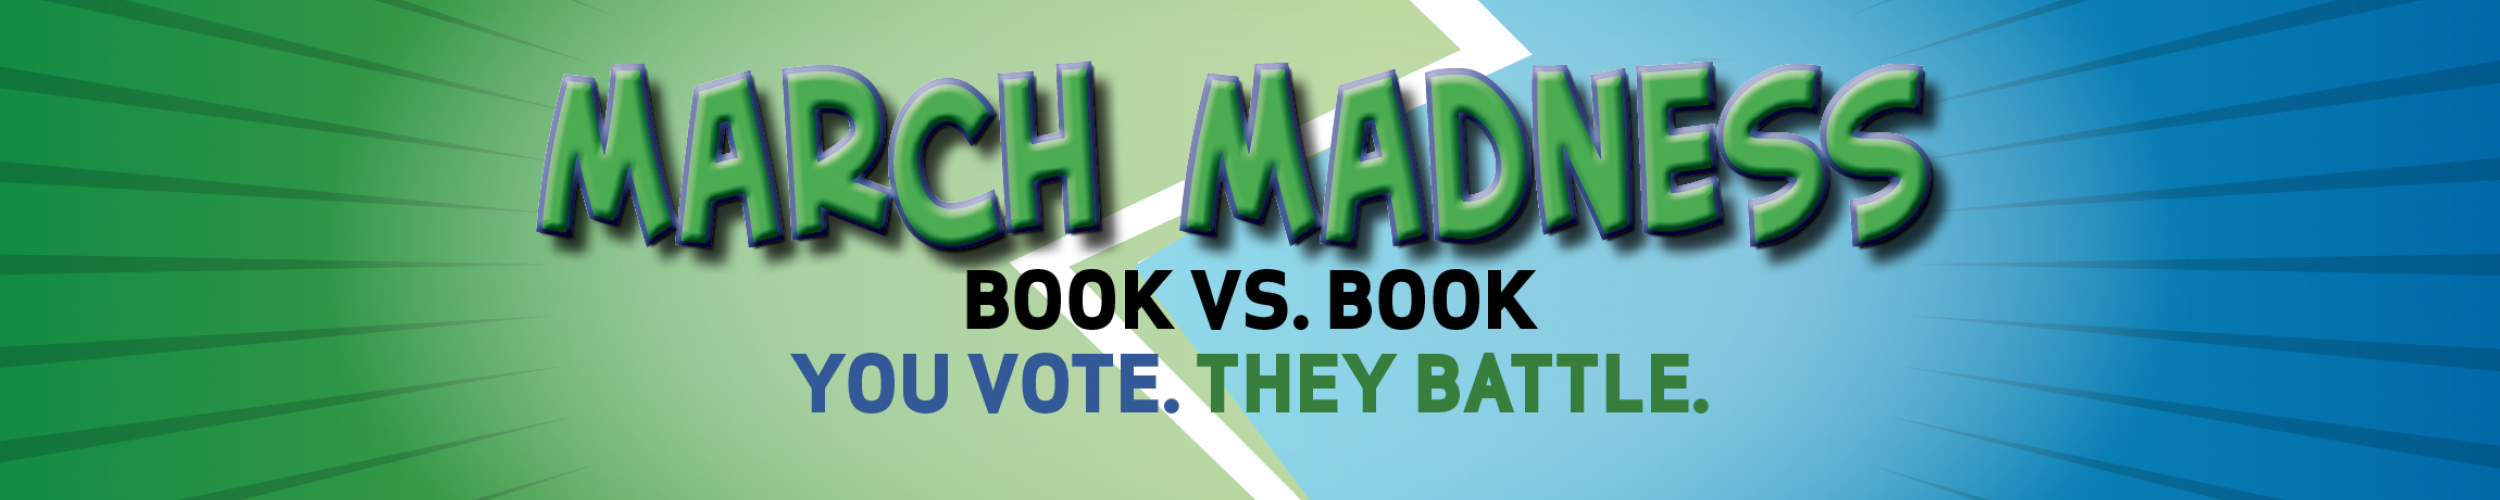 March Madness: Book vs. Book. You Vote. They Battle.